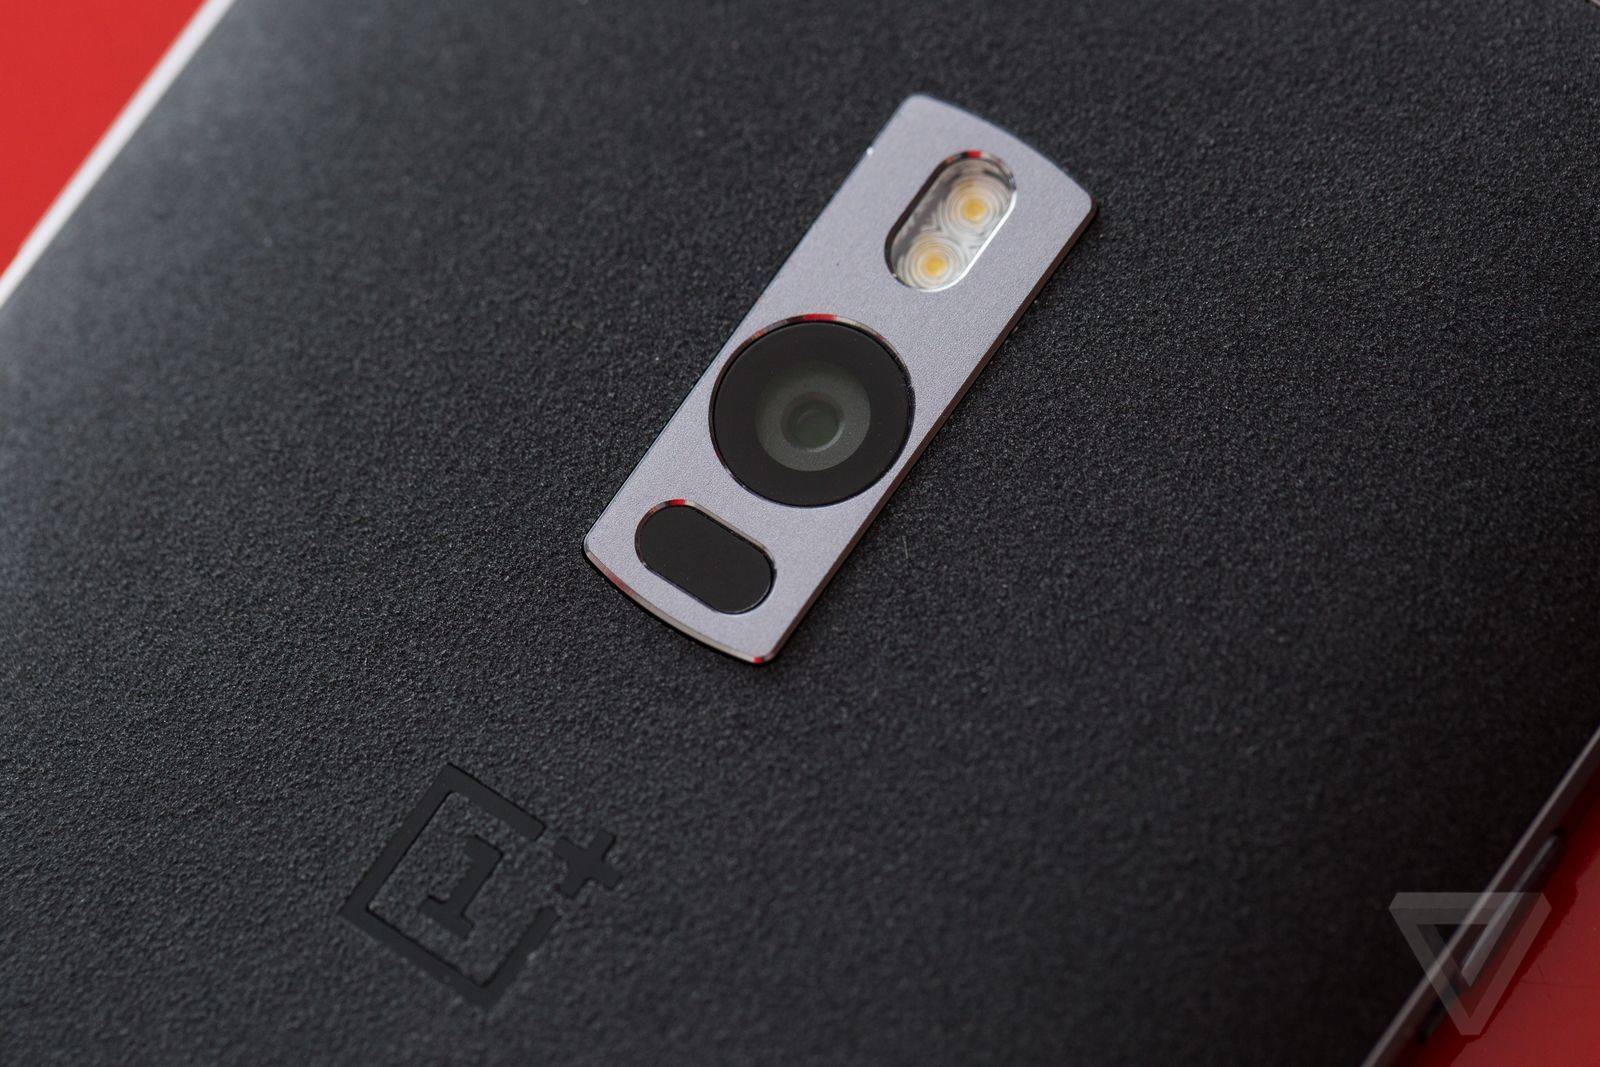 oneplus-two-9600.0.jpg